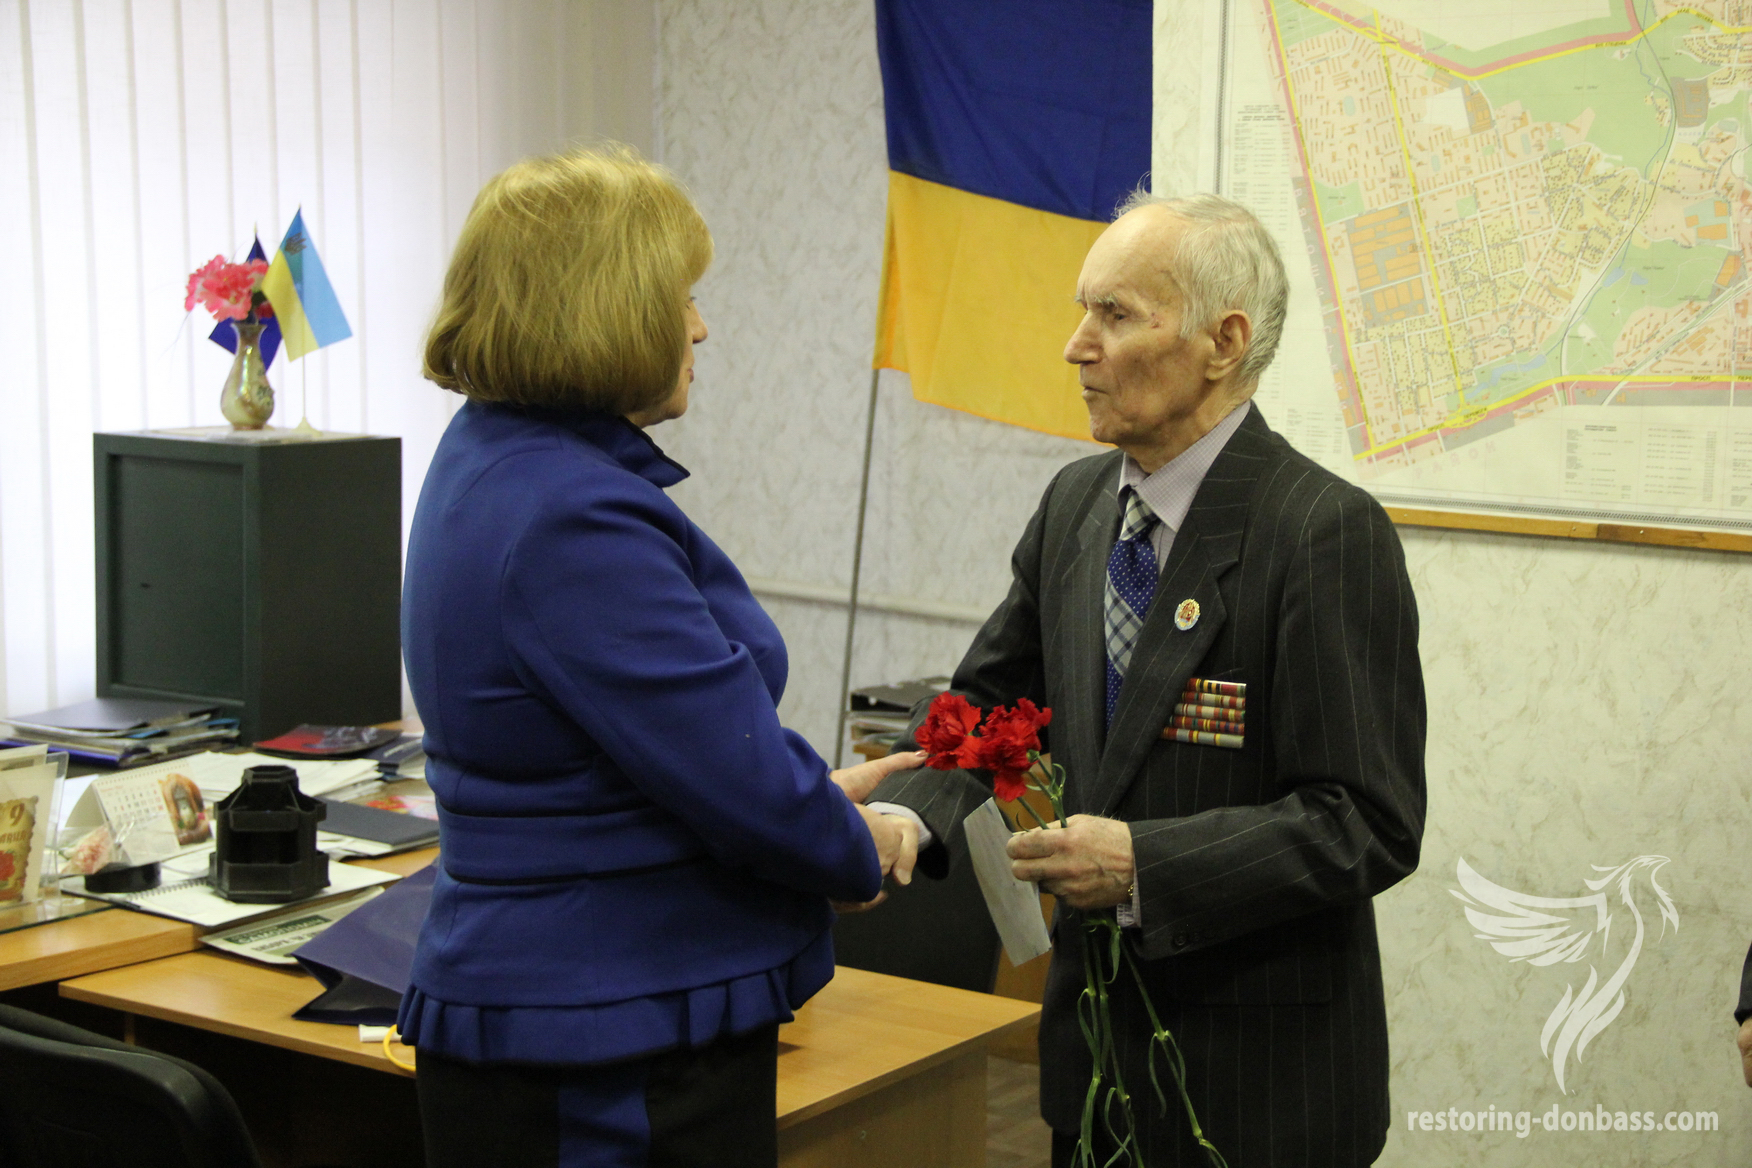 Restoring Donbas visited Kiev veterans of war and work